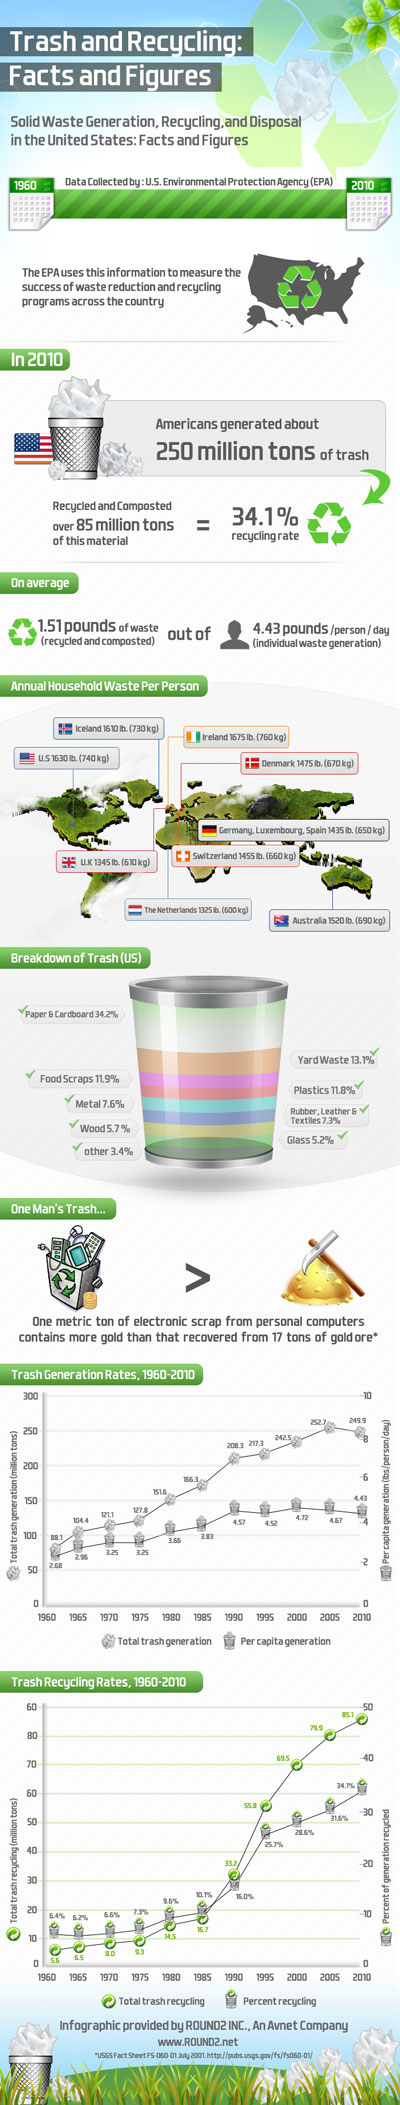 Infographic: Trash and Recycling Trends